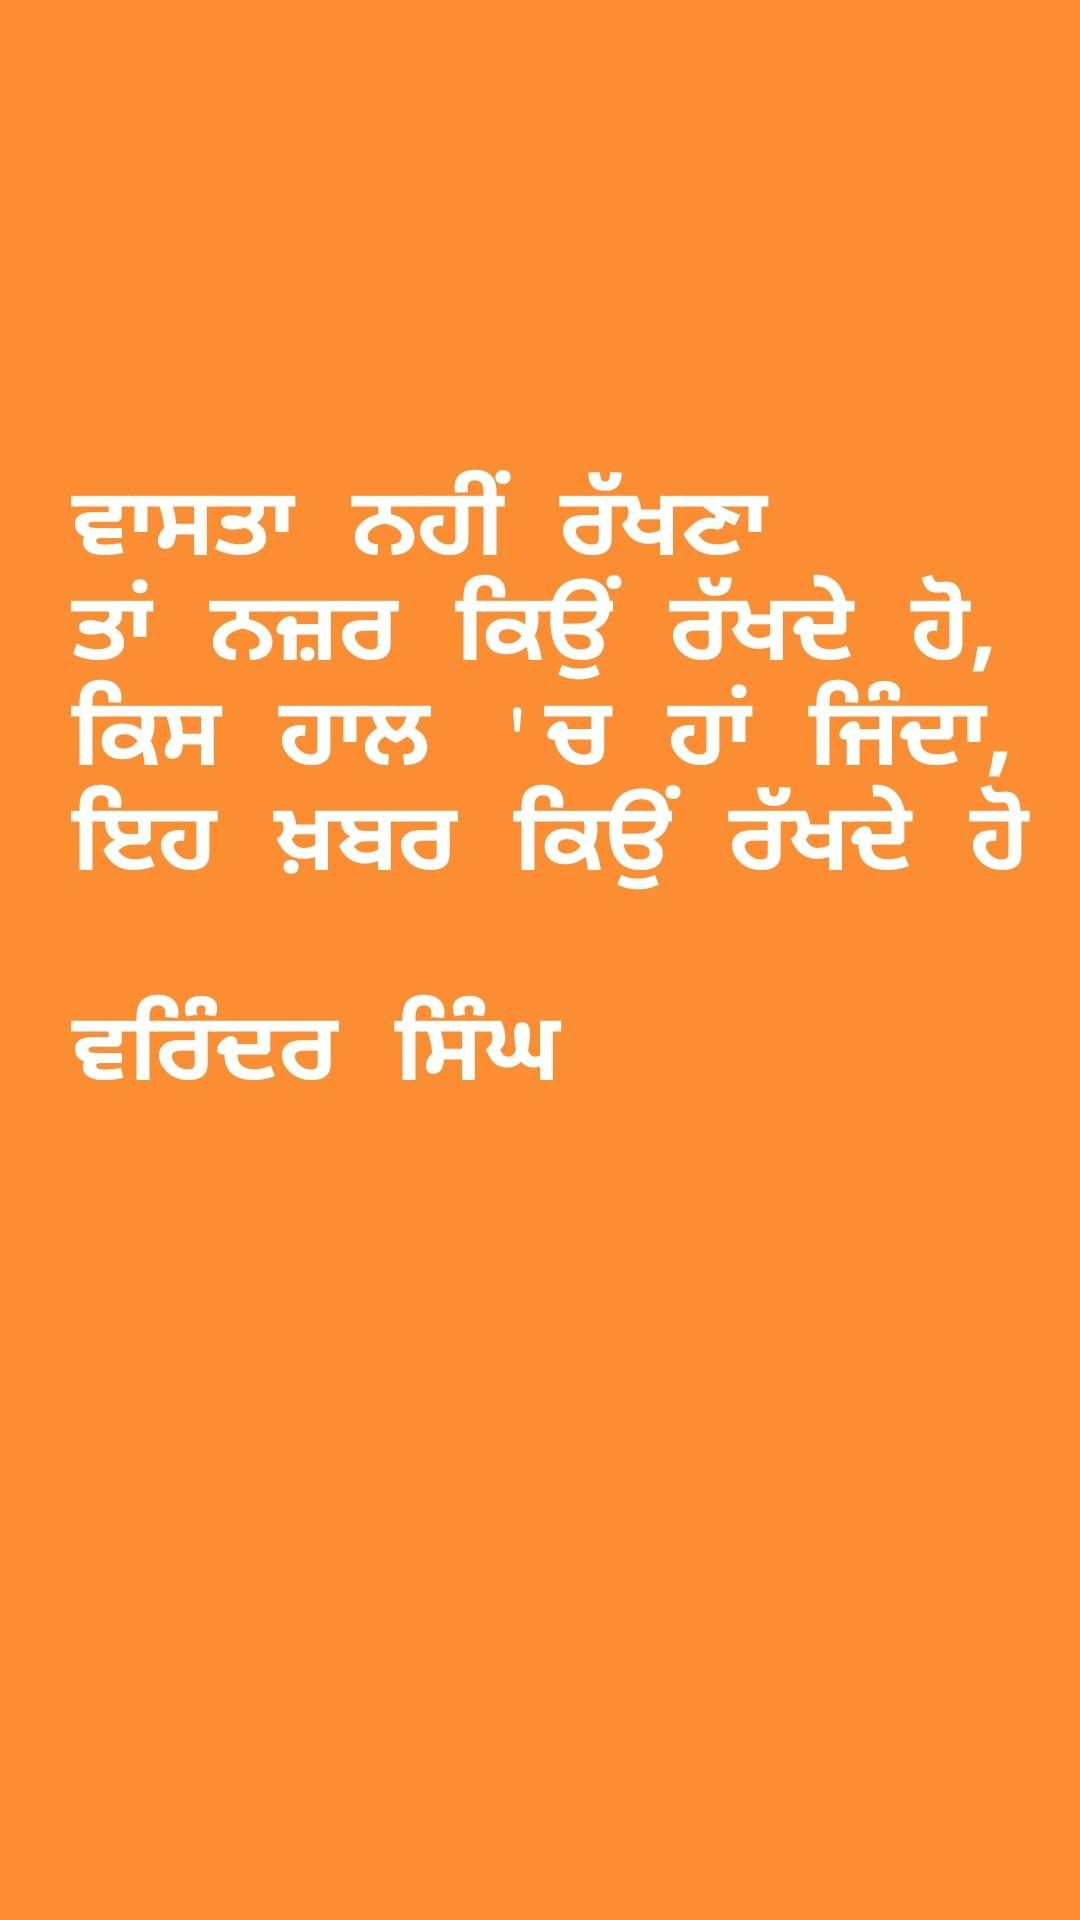 Pin By Varinder Singh On ਵ ਲ Quotations Punjabi Quotes Quotes